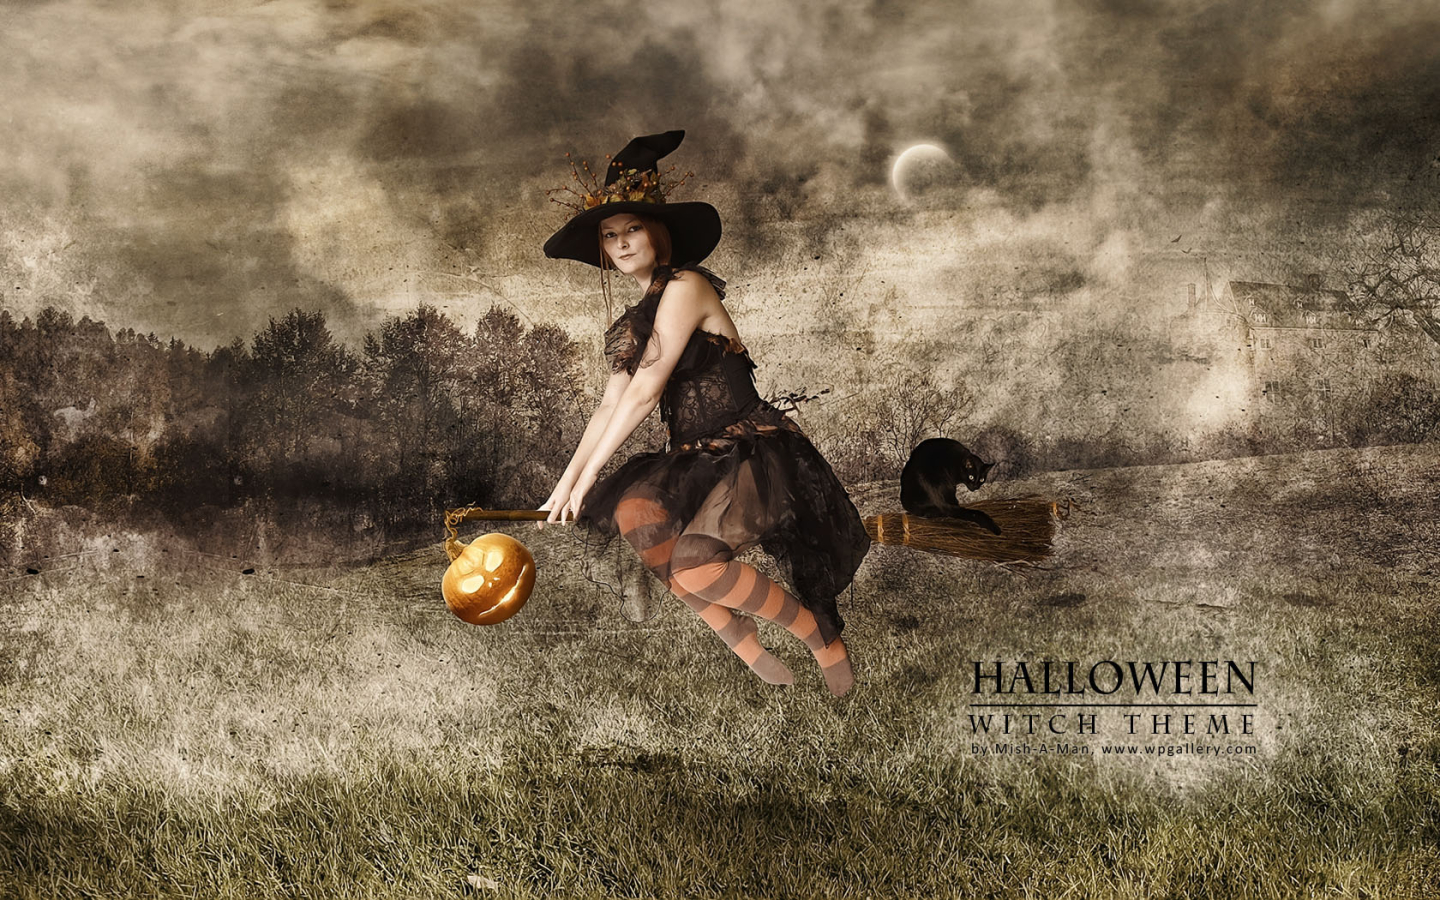 Halloween - Witch theme for 1440 x 900 widescreen resolution